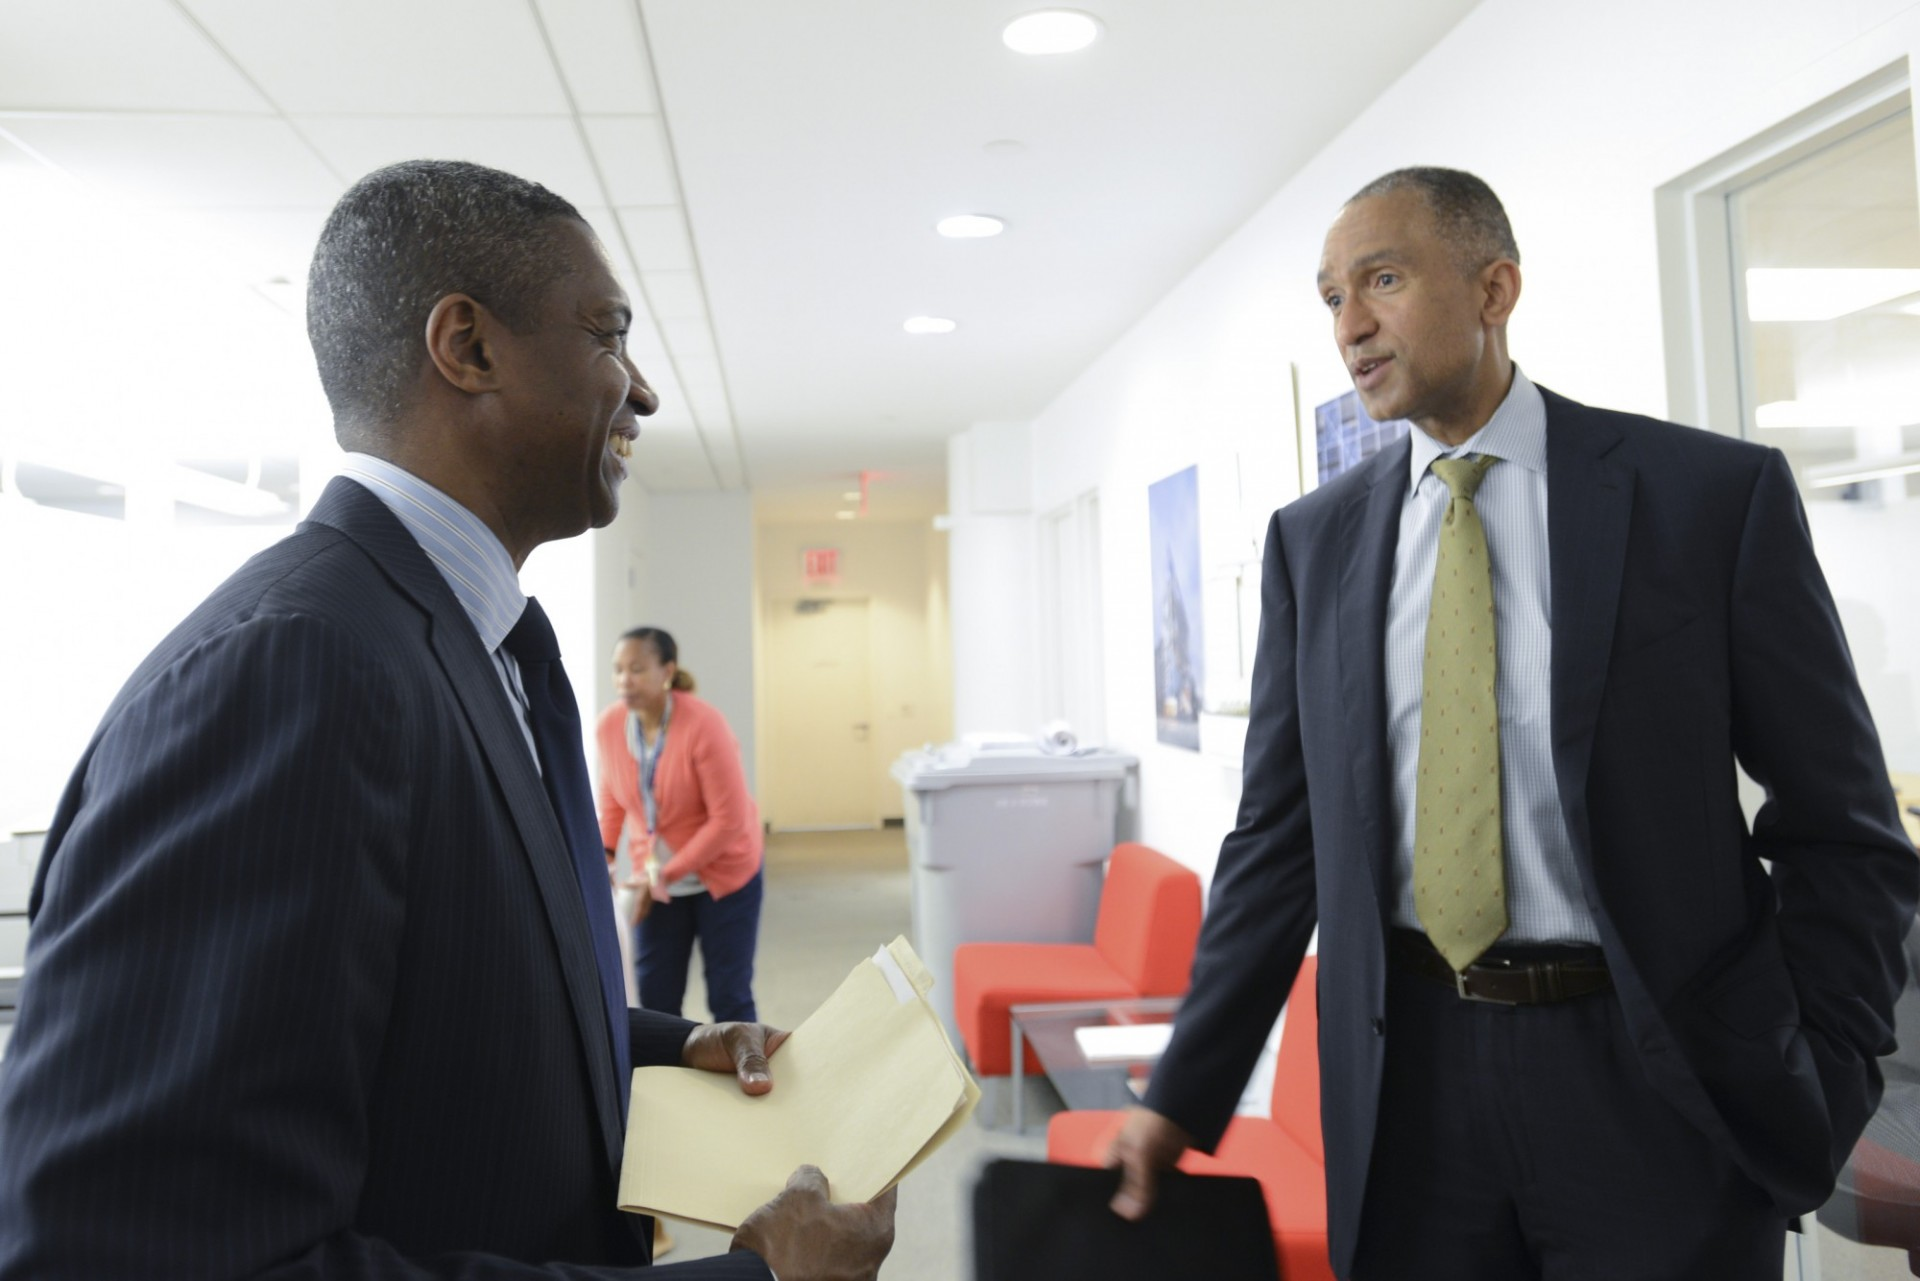 Gerrard Bushell, president and CEO of DASNY (left), speaking with Colin Redhead, deputy treasurer of Columbia University, during a recent tour of Columbia's new Manhattanville campus. (Photo credit: DASNY)